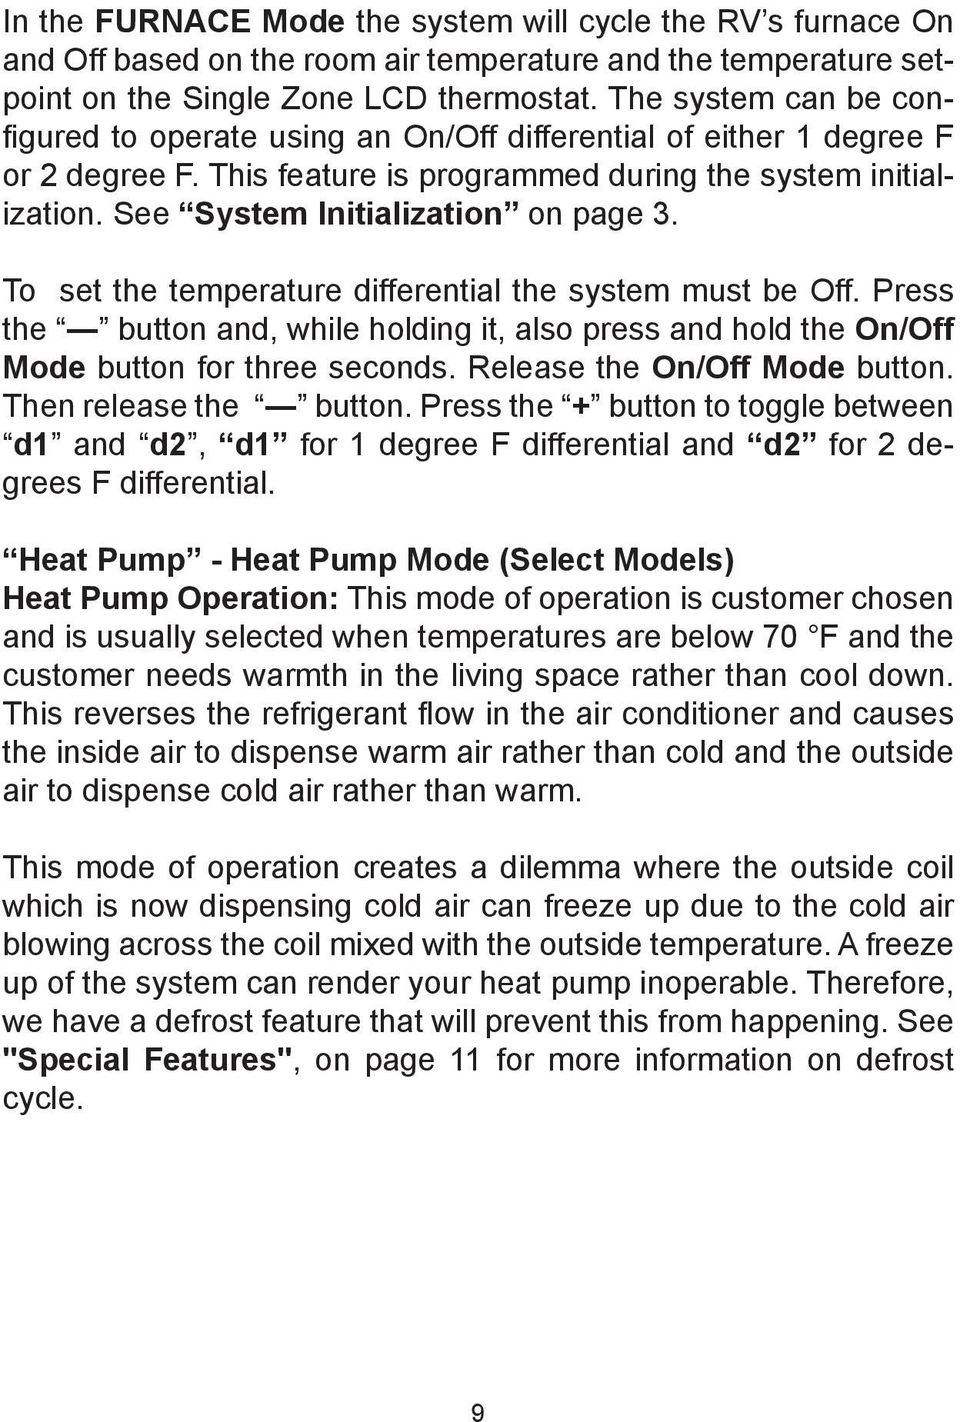 See System Initialization on page 3. To set the temperature differential the system must be Off. Press the button and, while holding it, also press and hold the On/Off button for three seconds.